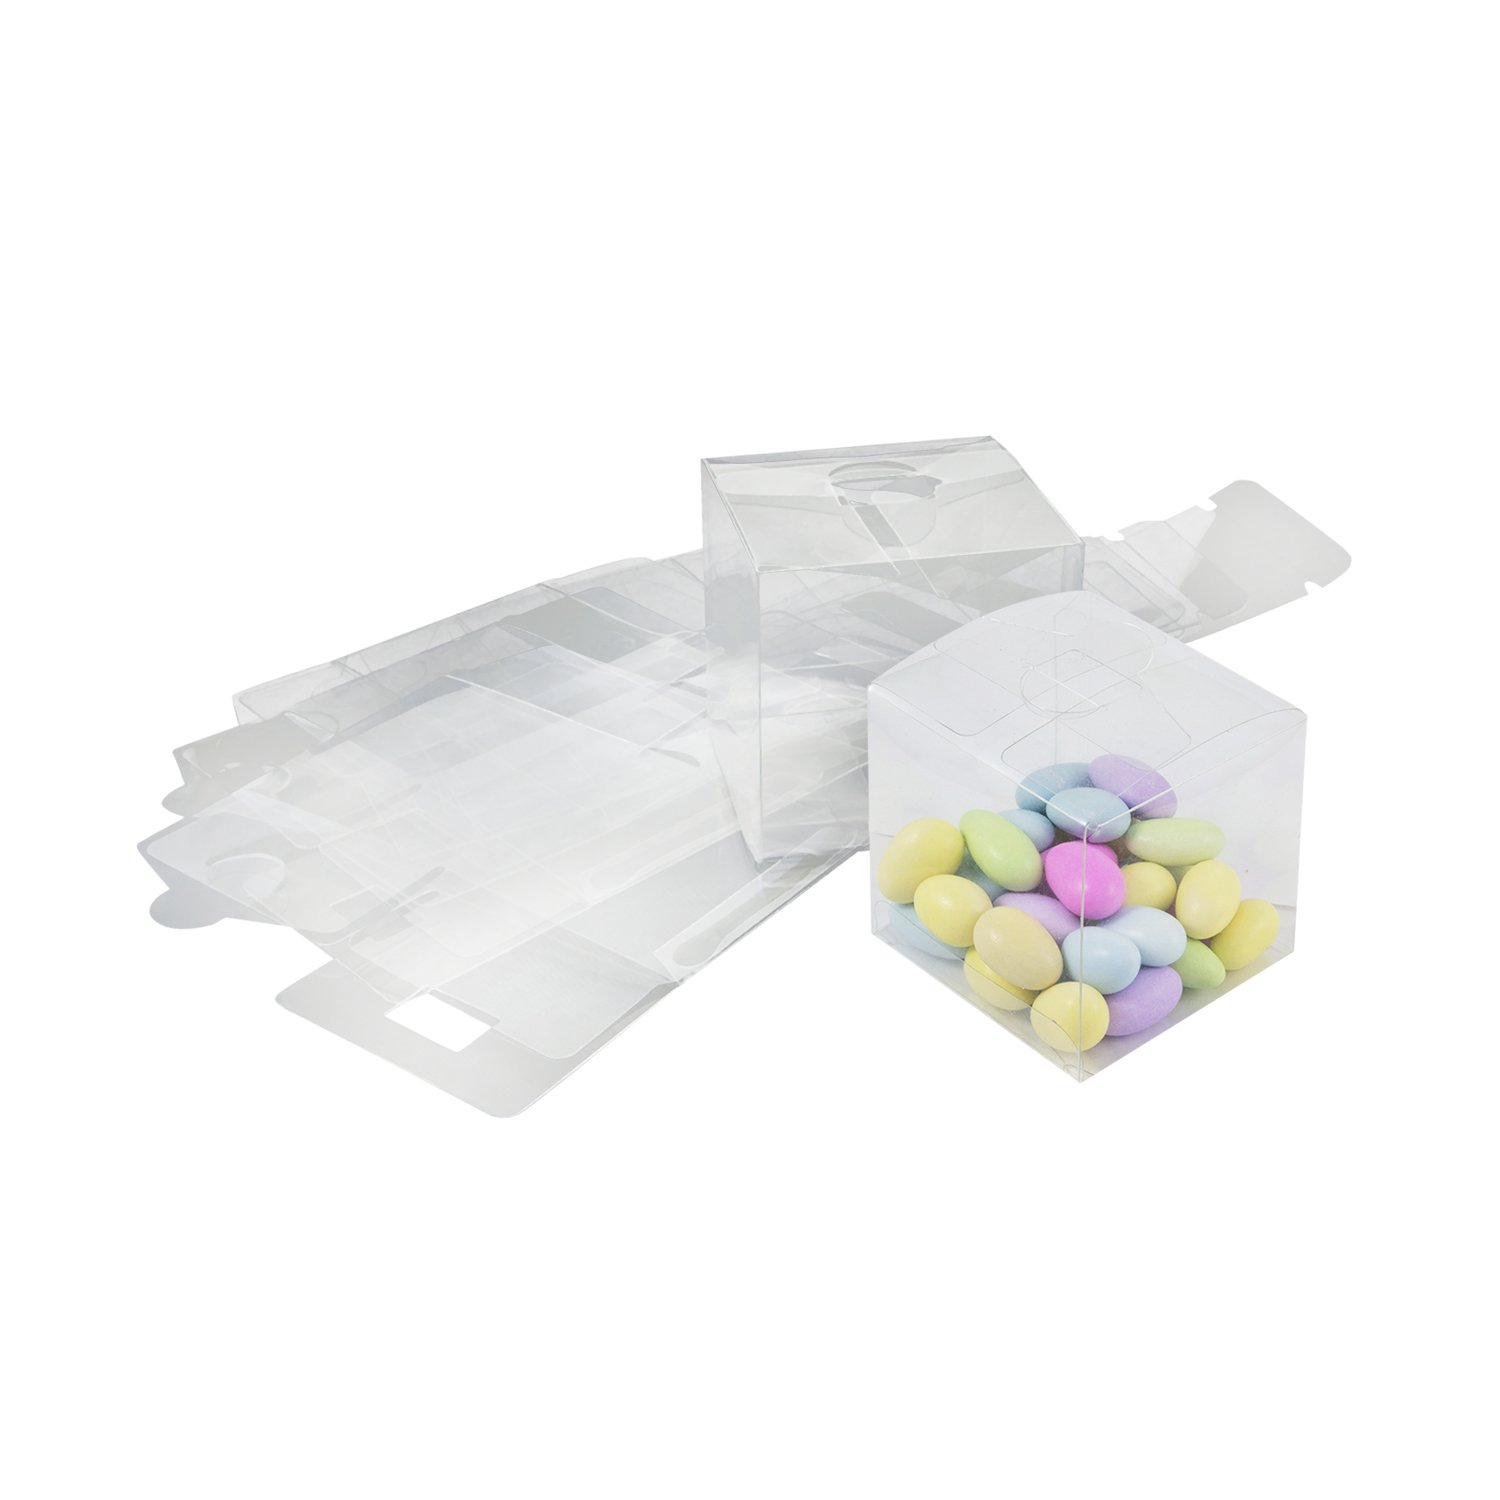 "Amazon.com: ClearBags 3"" x 3"" x 3"" Clear Gift Boxes 